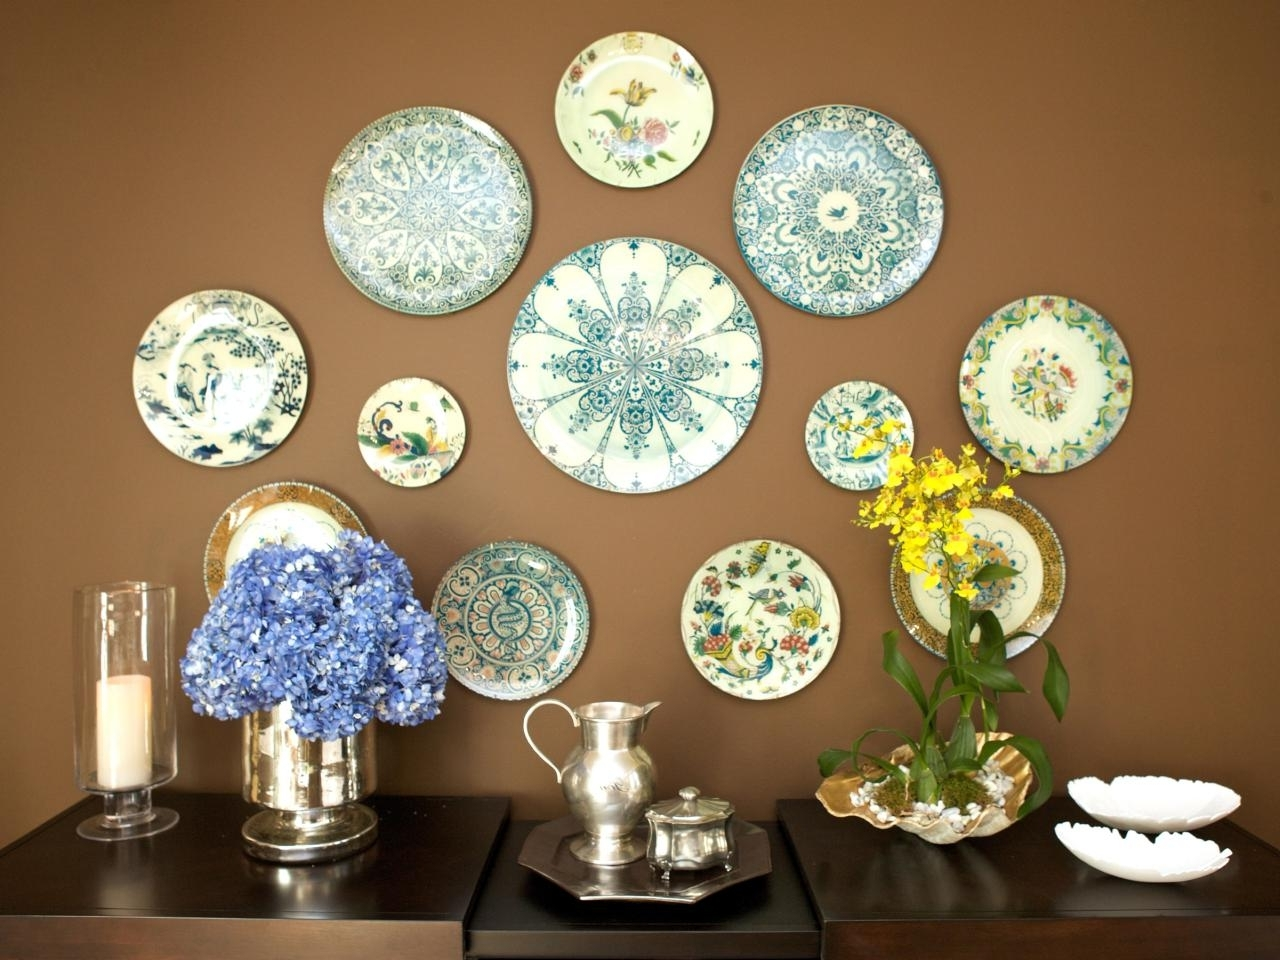 Hgtv's Decorating Regarding Formal Dining Room Wall Art (View 12 of 15)